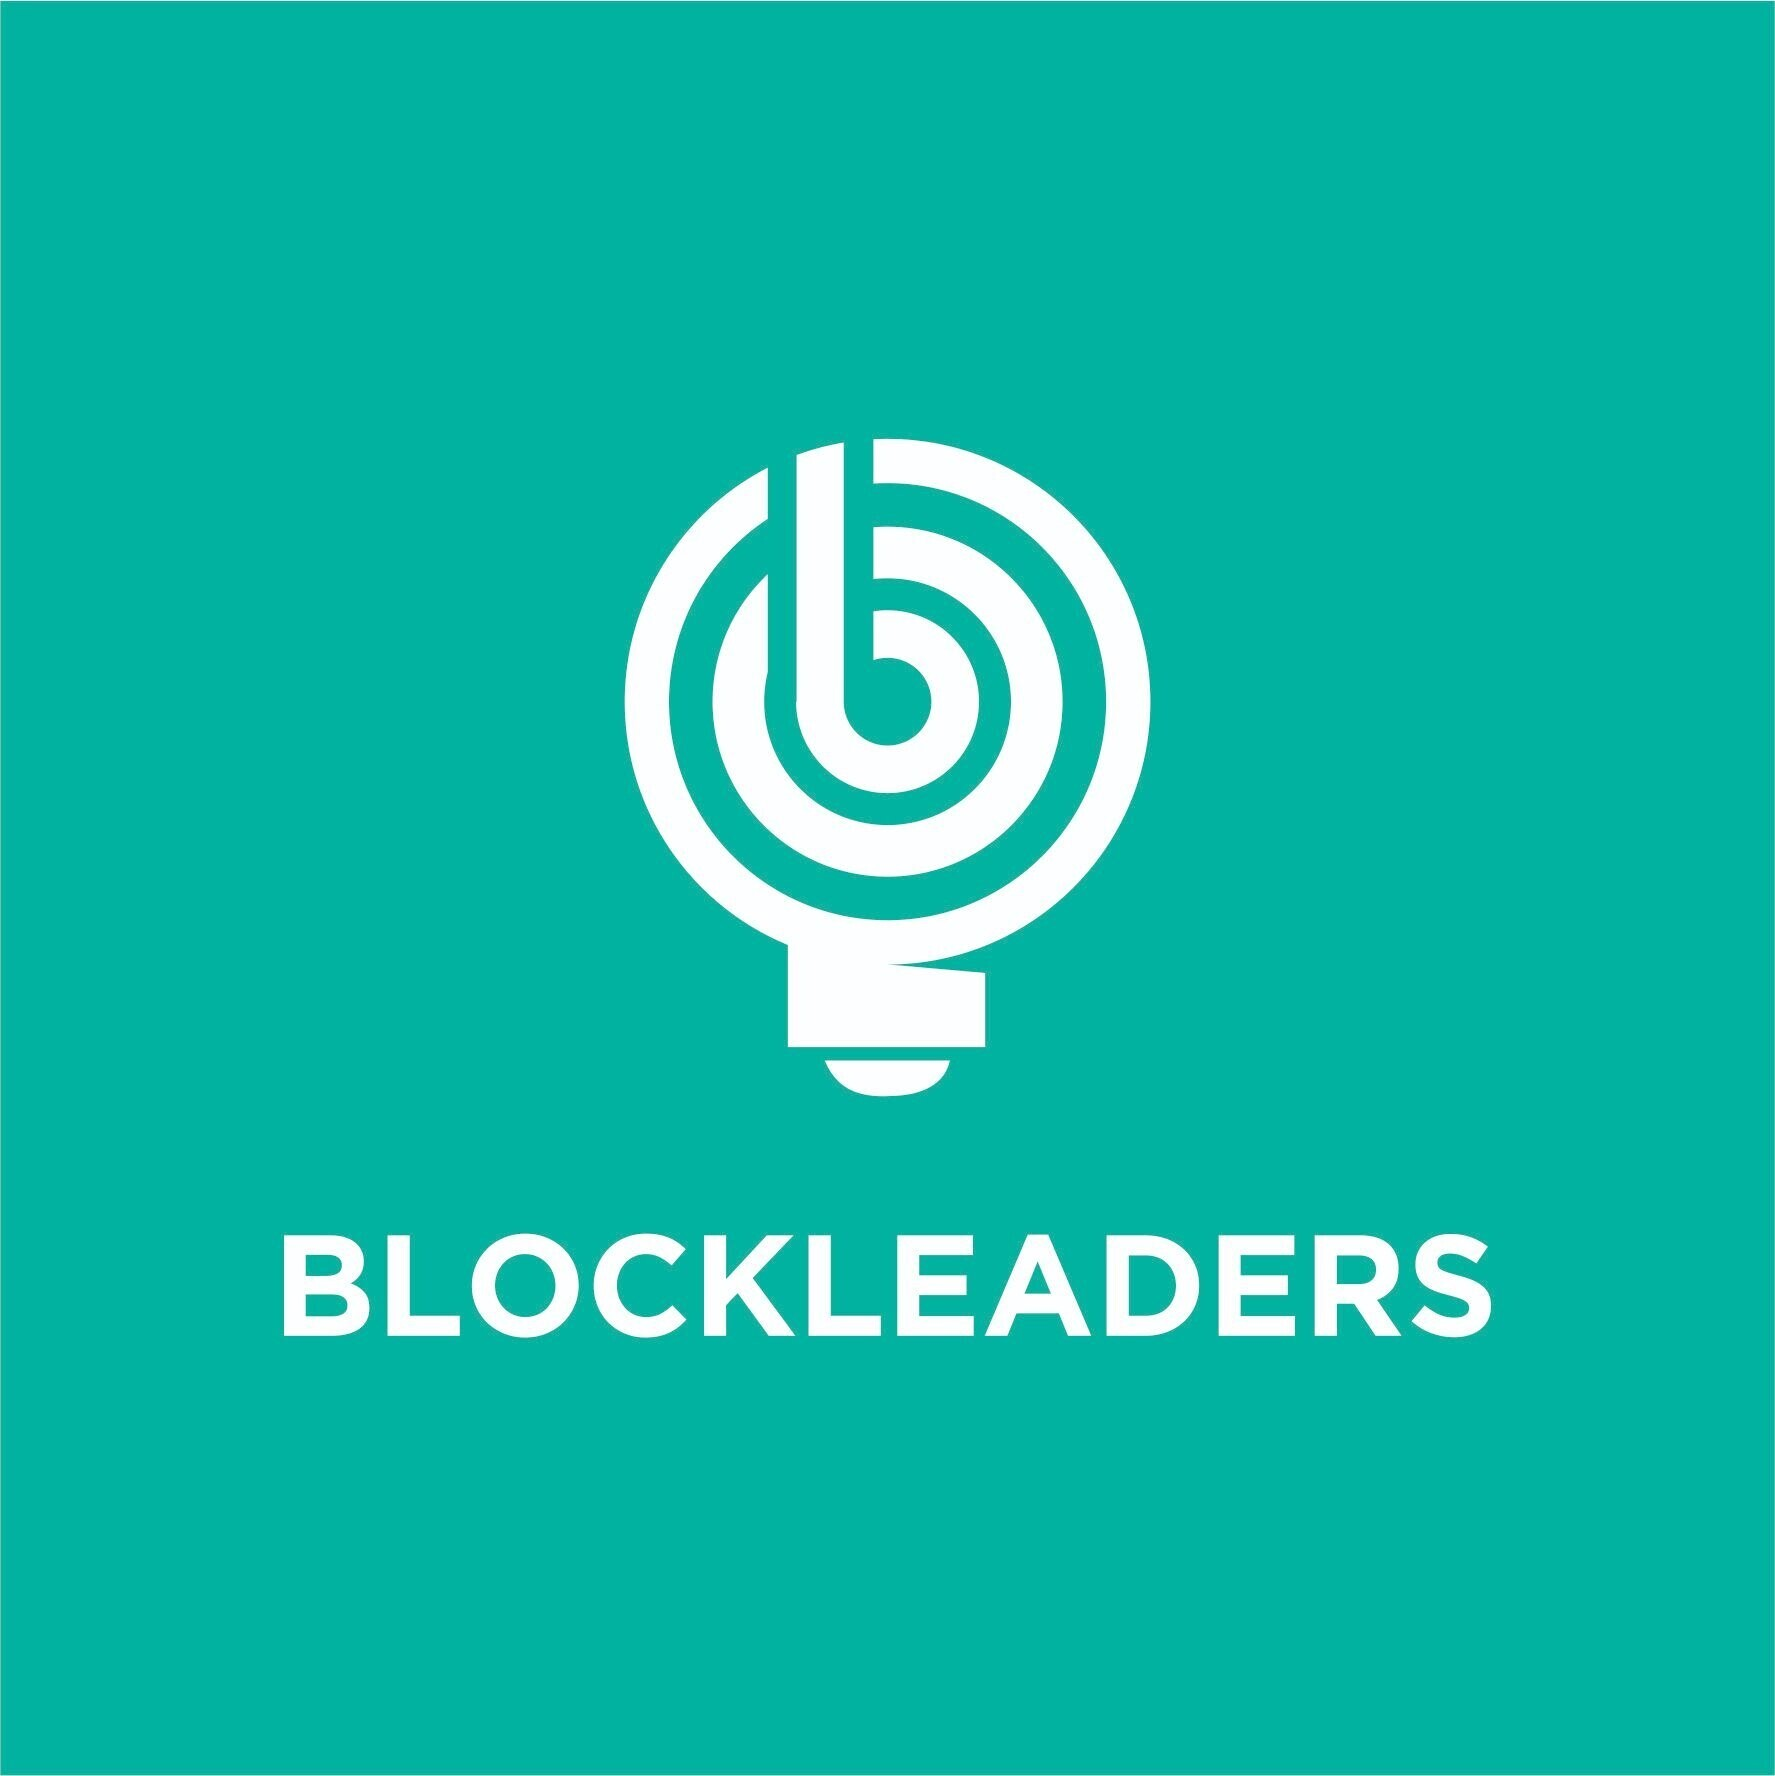 blockleaders